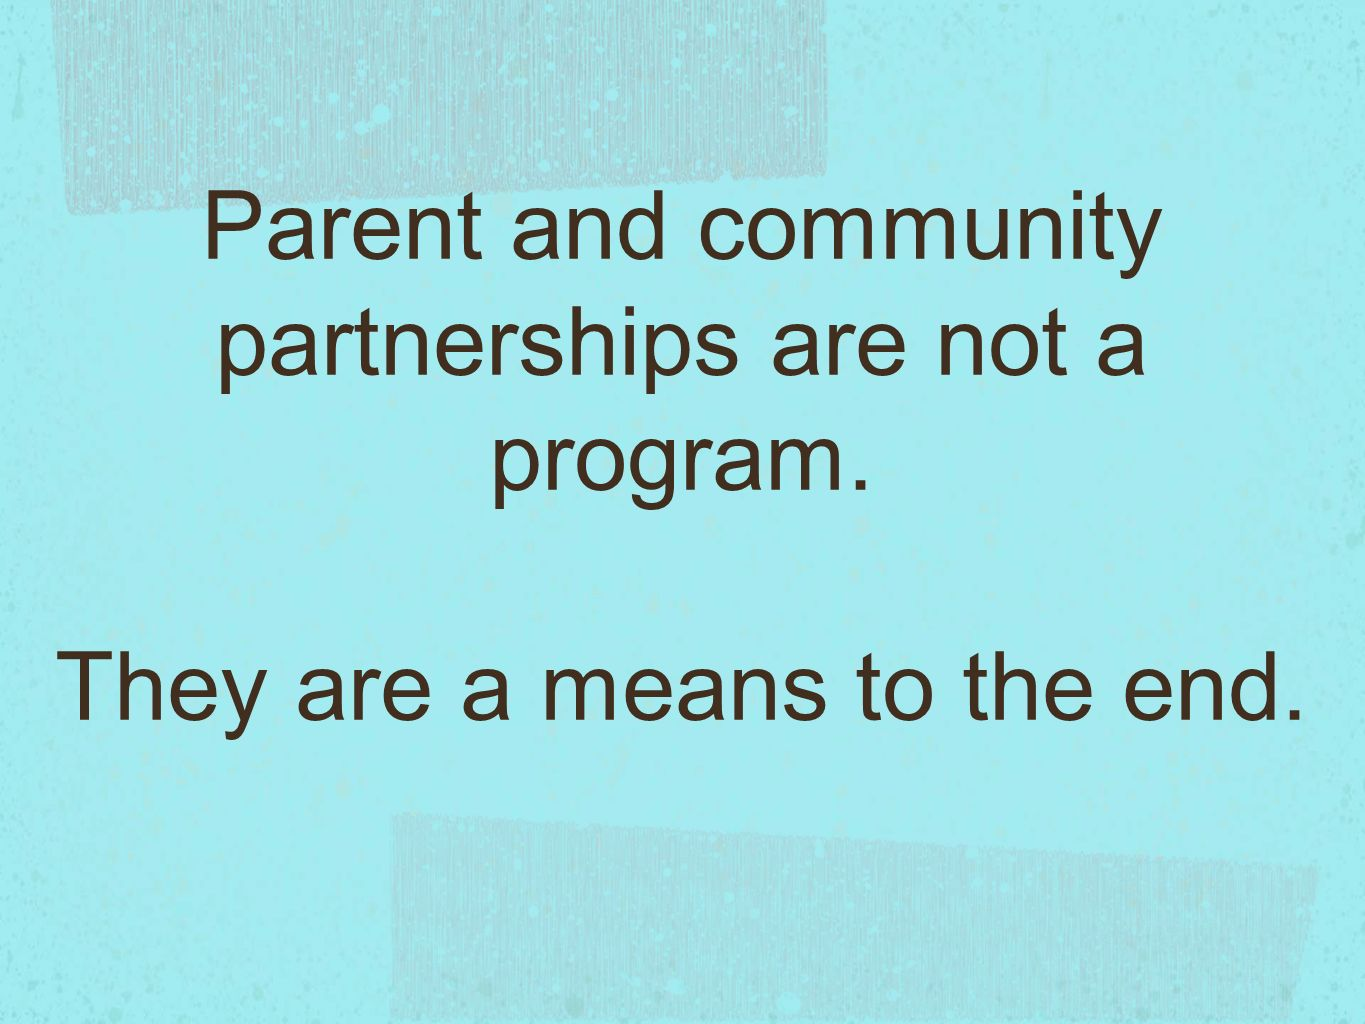 Parent and community partnerships are not a program. They are a means to the end.